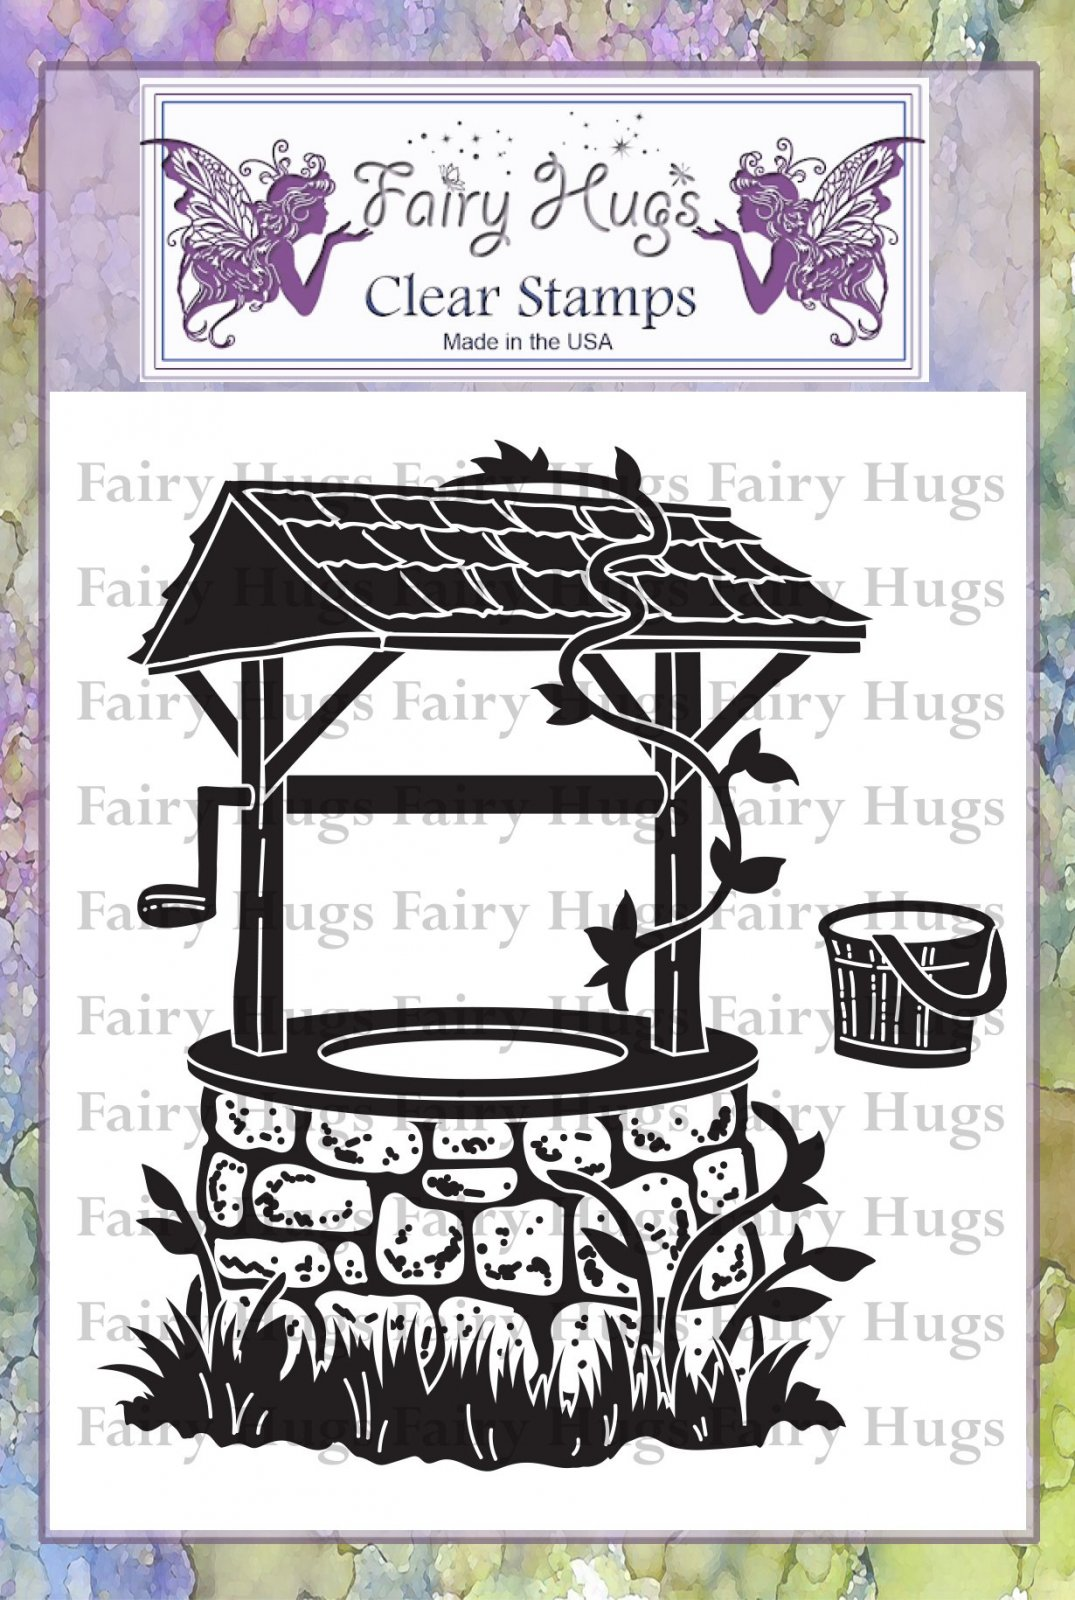 PRE ORDER Fairy Hugs Stamps - Wishing Well